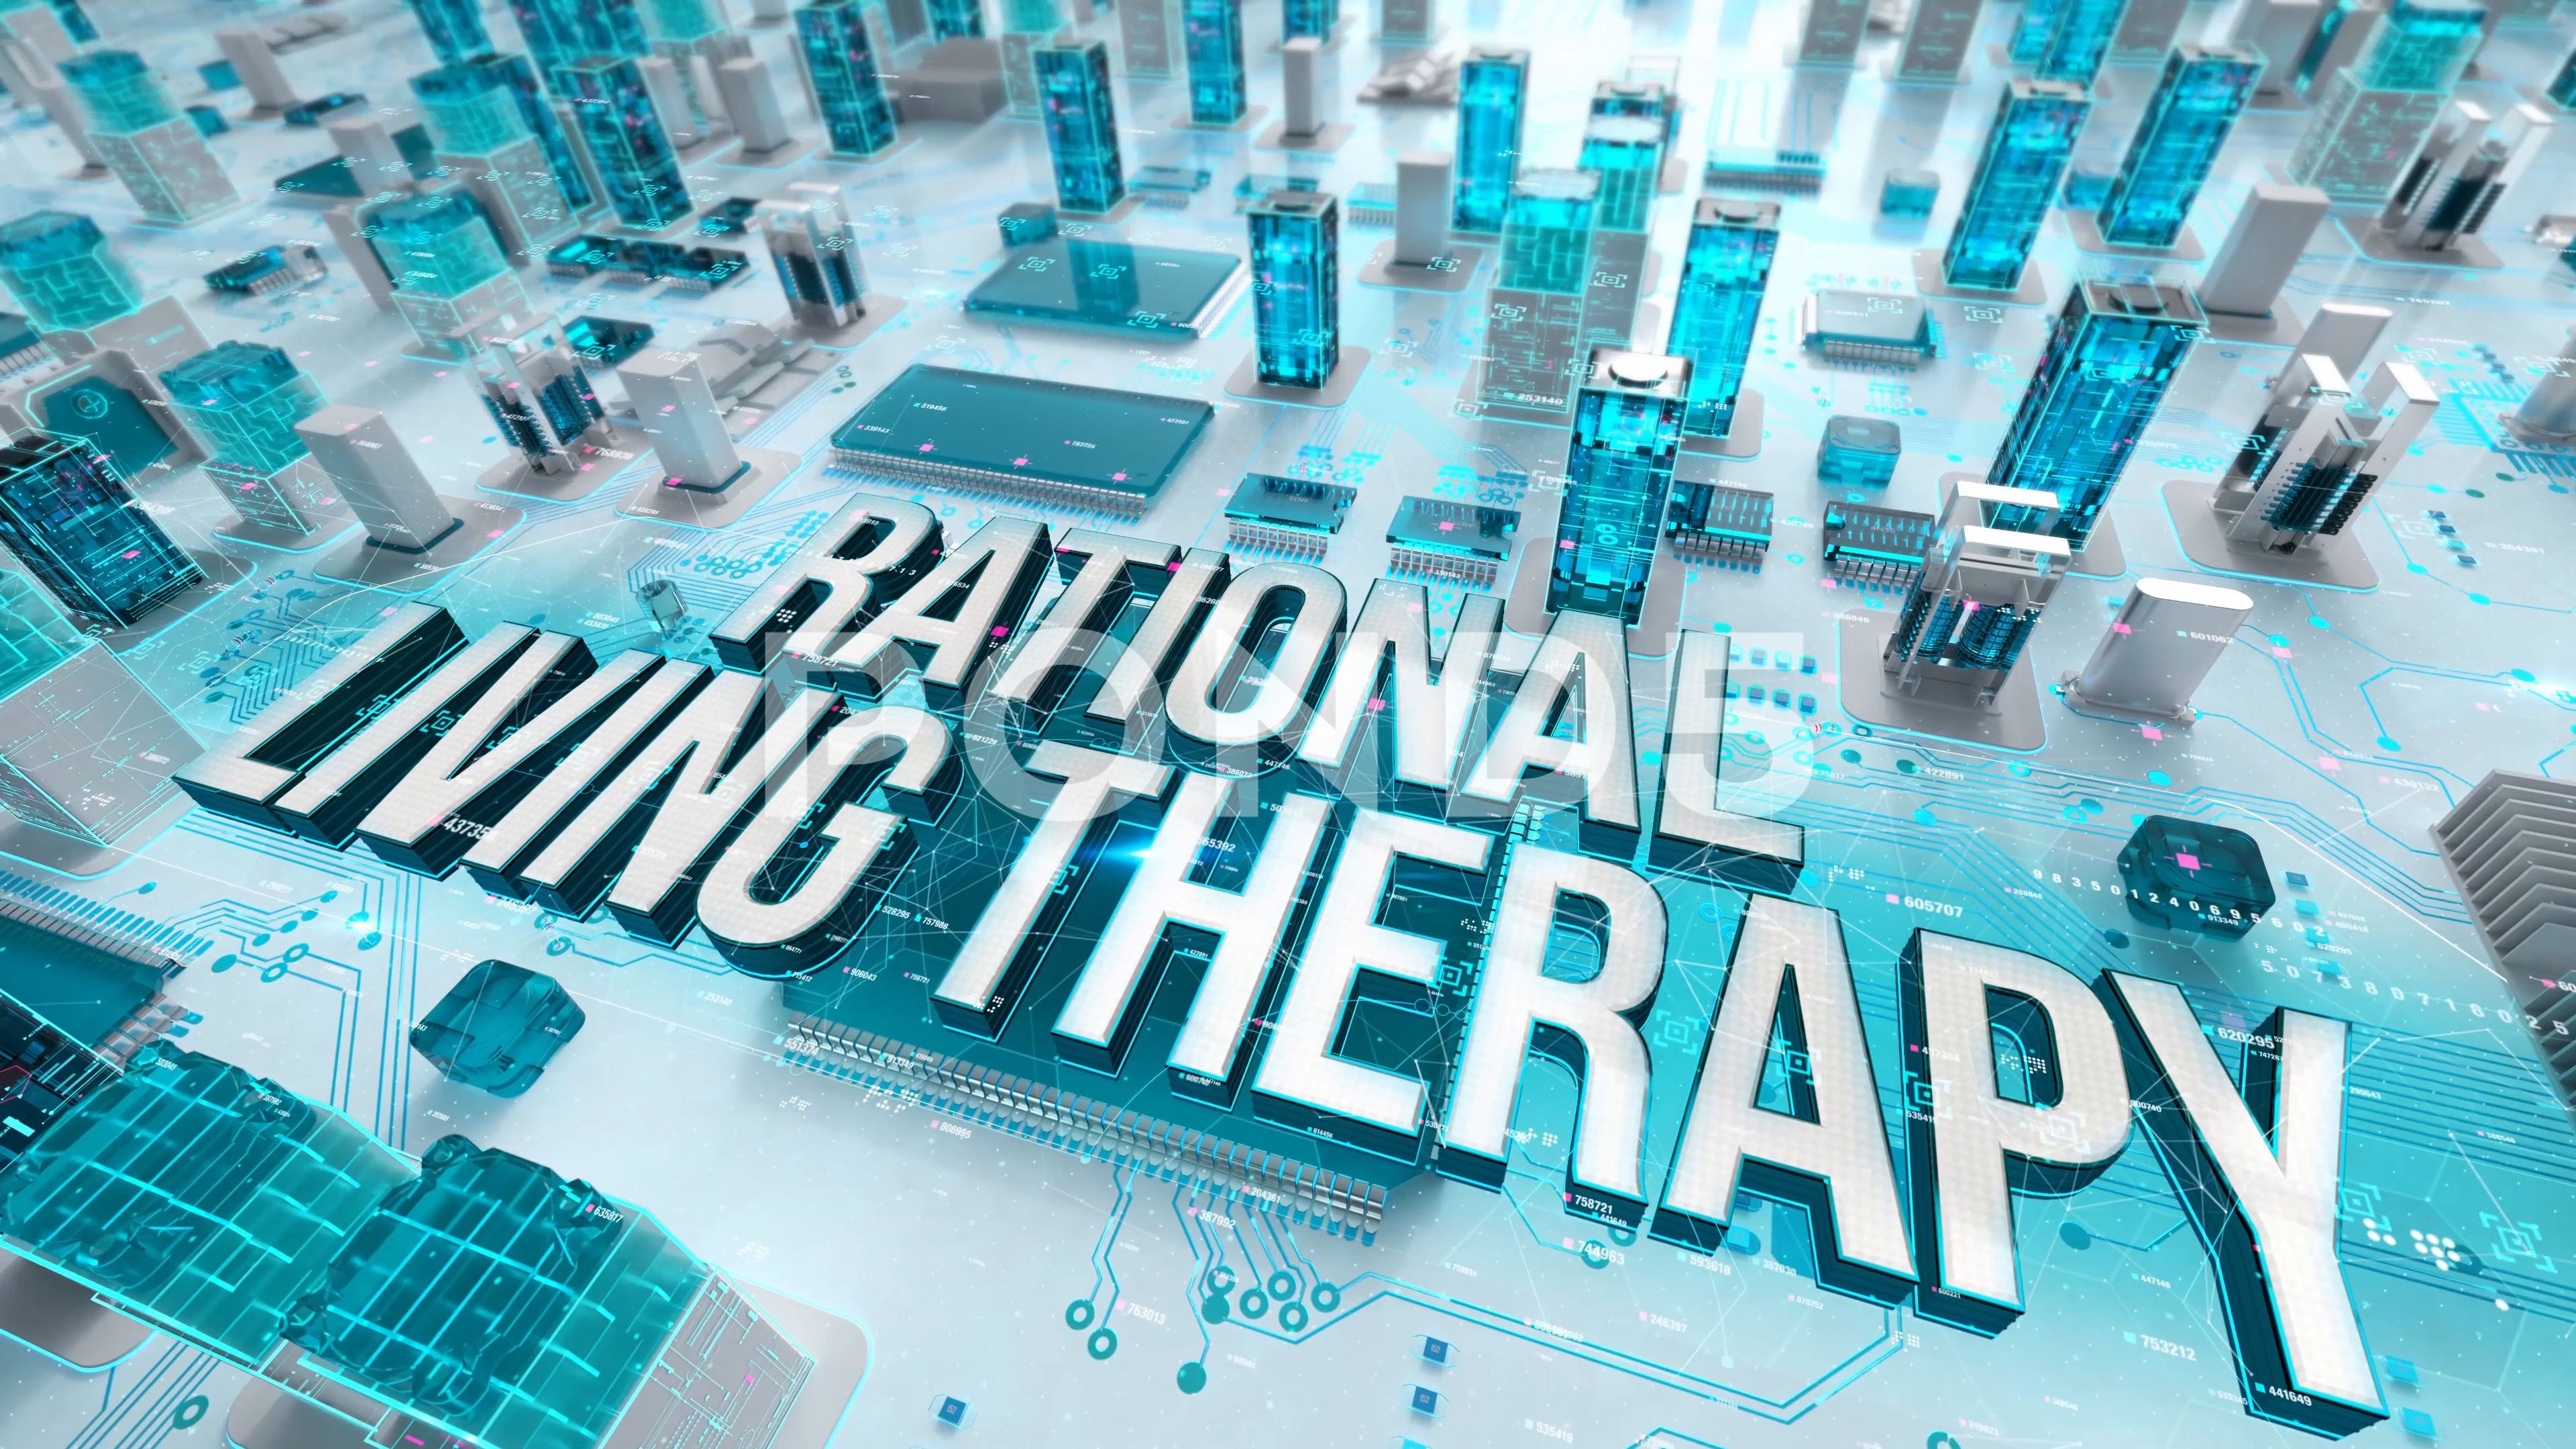 Rational Living Therapy With Medical Digital Technology